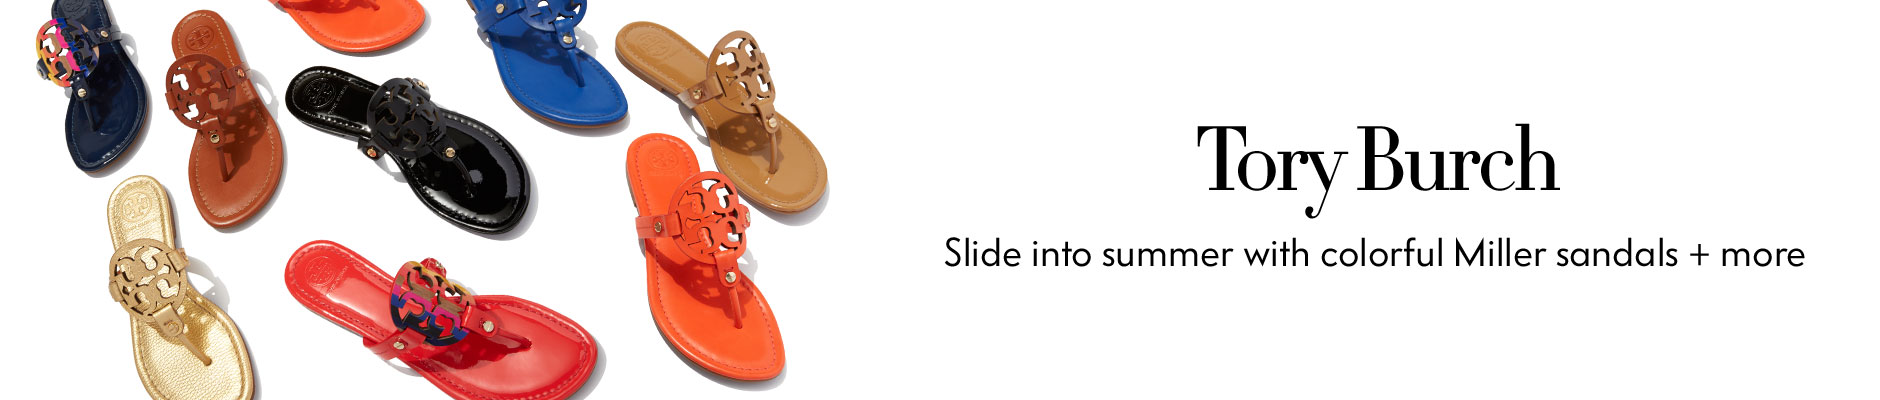 Tory Burch - Slide into summer with colorful Miller sandals + more